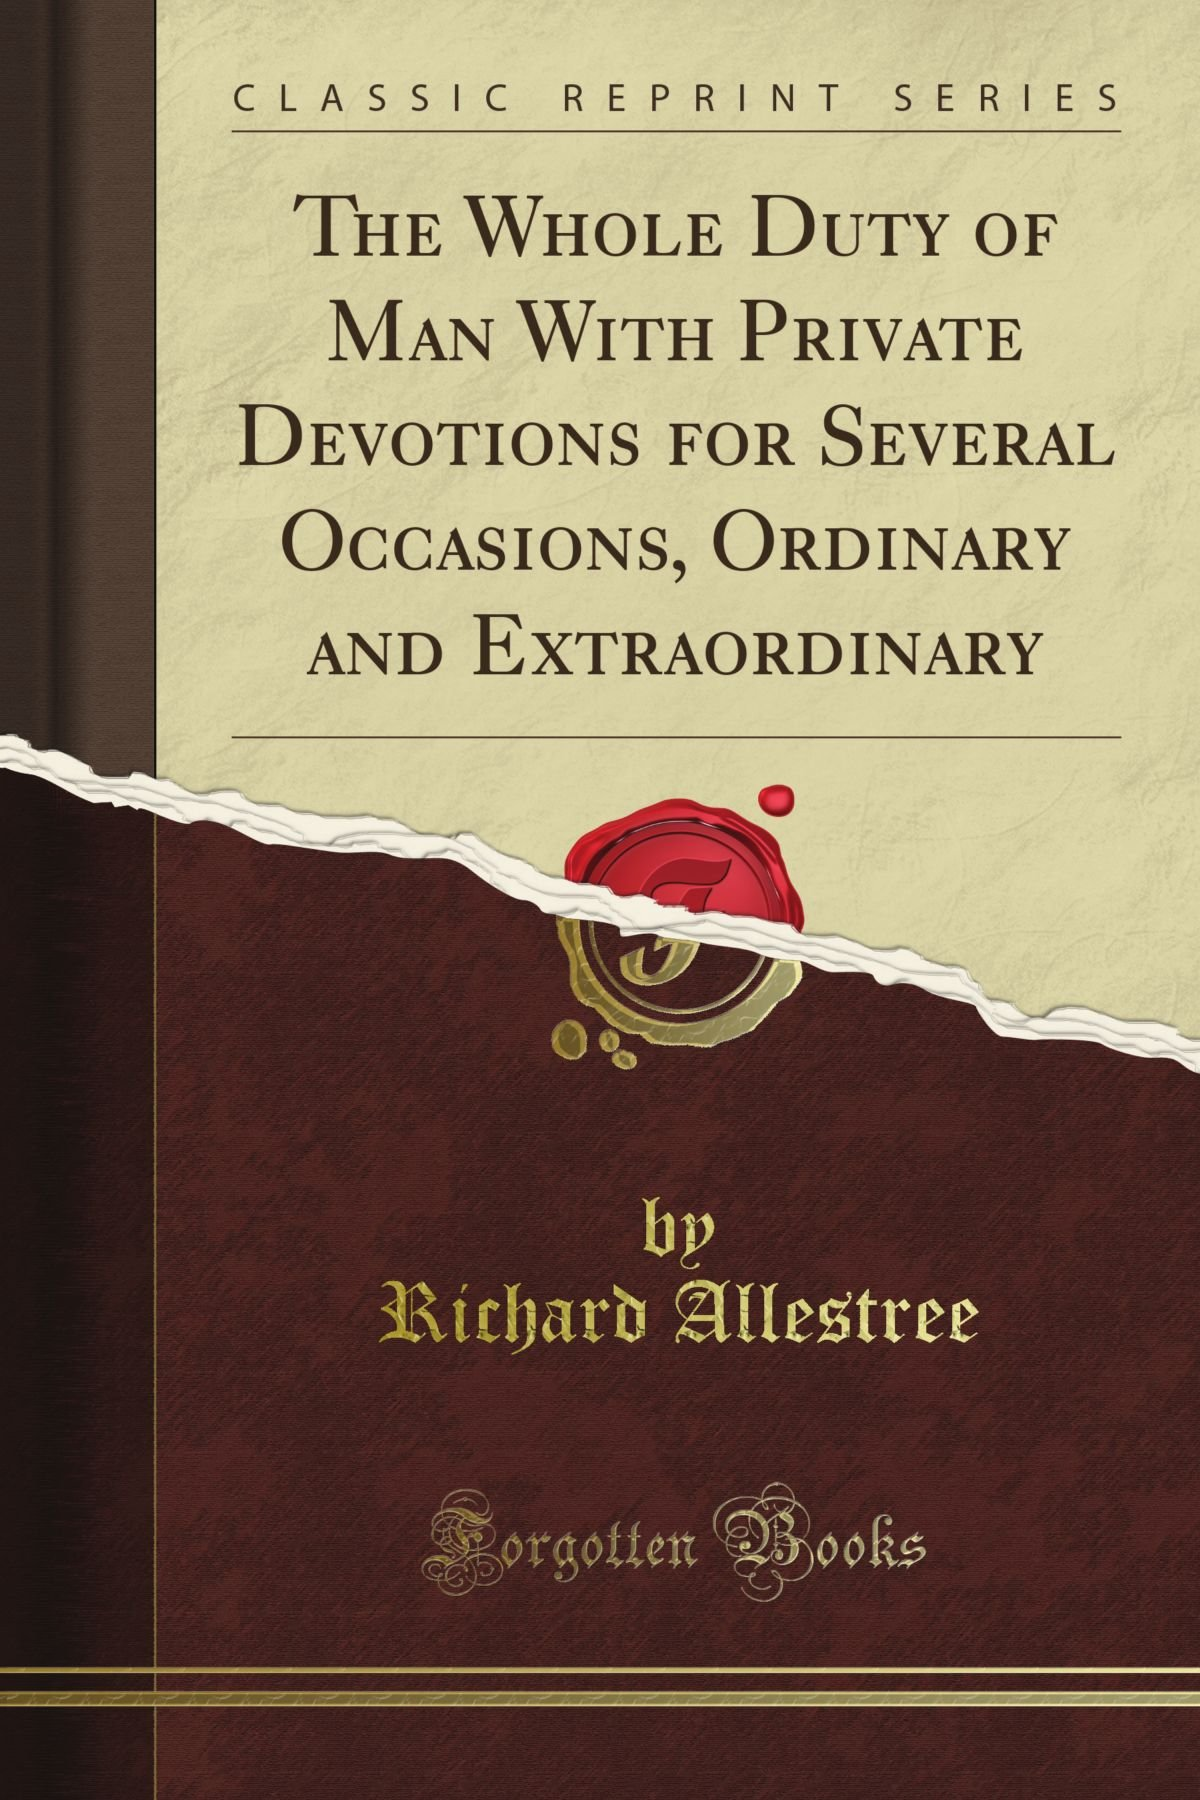 Download The Whole Duty of Man With Private Devotions for Several Occasions, Ordinary and Extraordinary (Classic Reprint) pdf